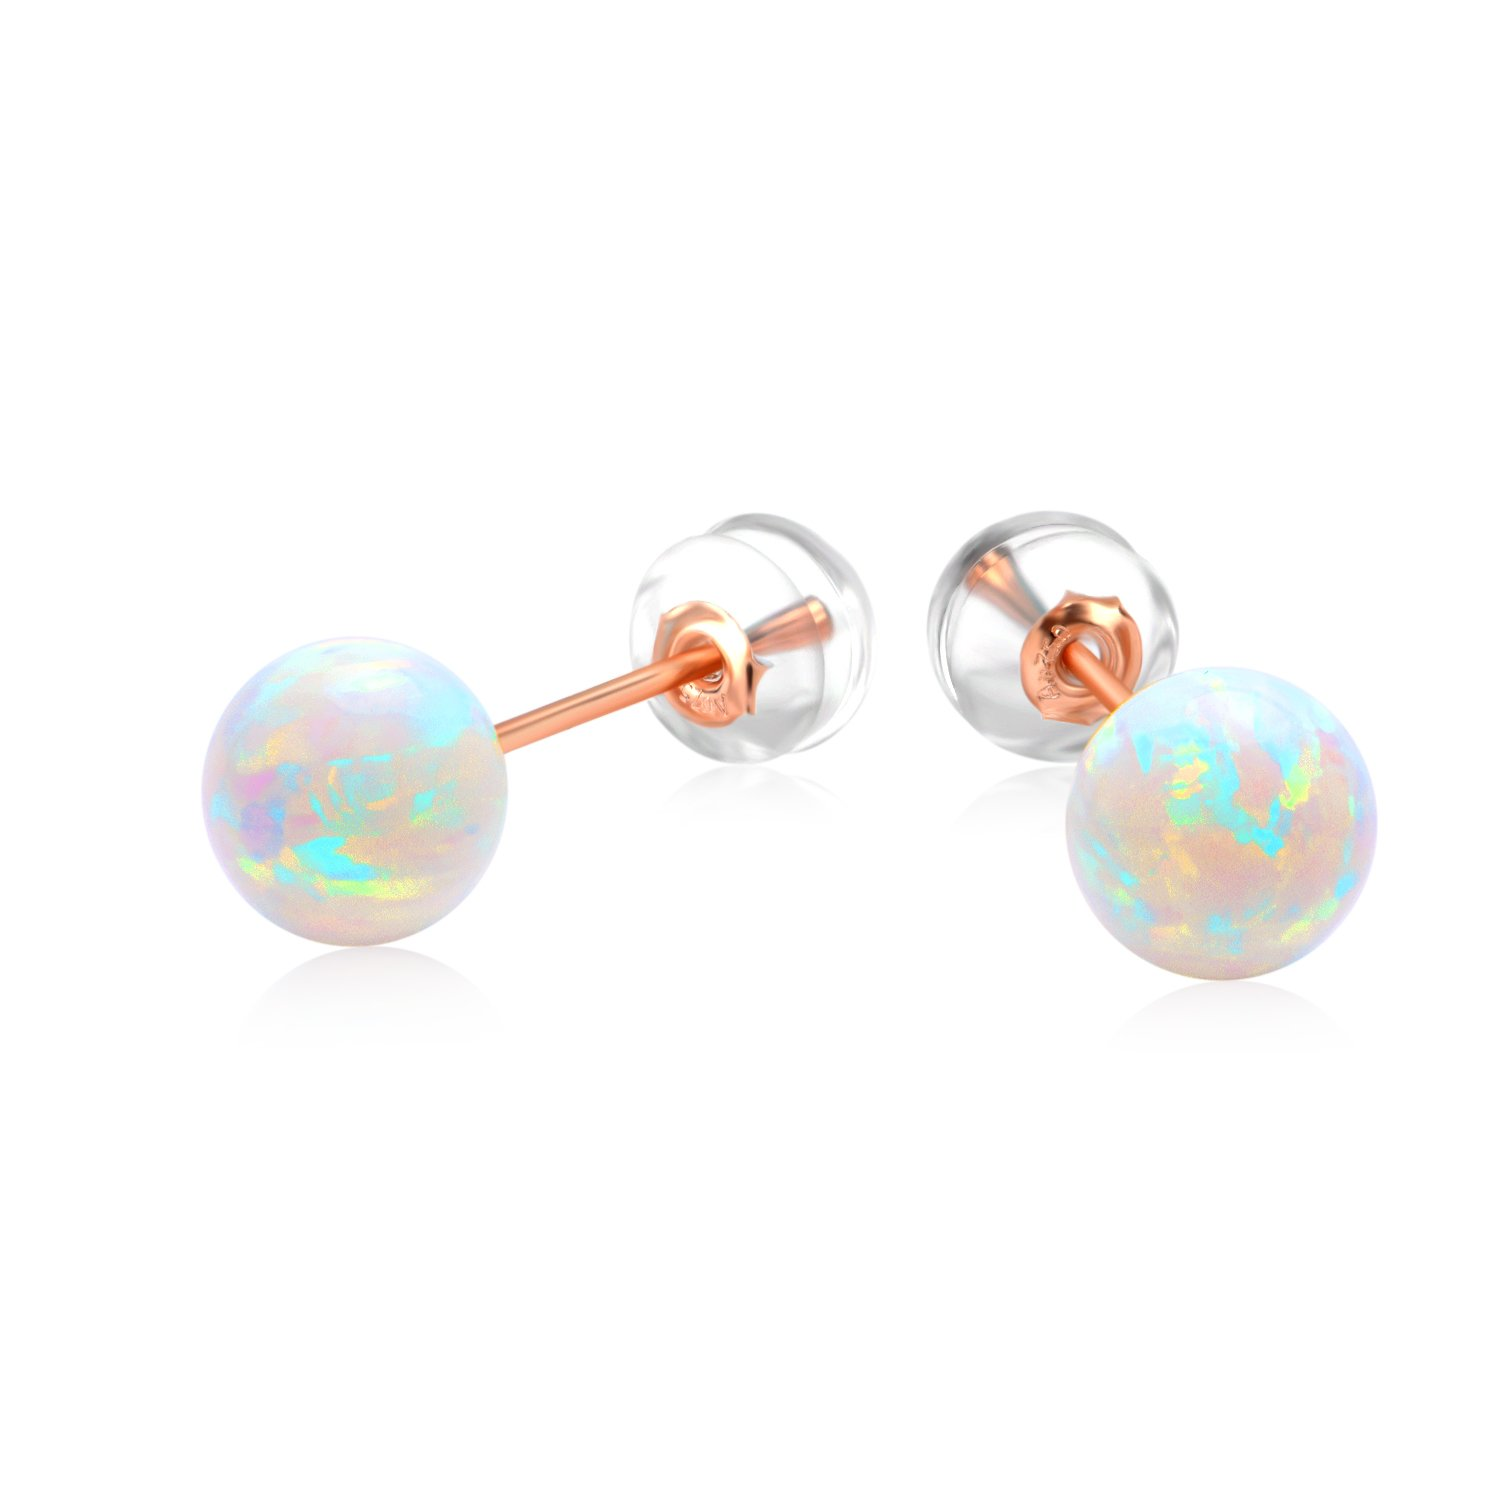 18k Gold Simulated Opal Earrings, Cultured Freshwater Pearl Studs for Women Teens